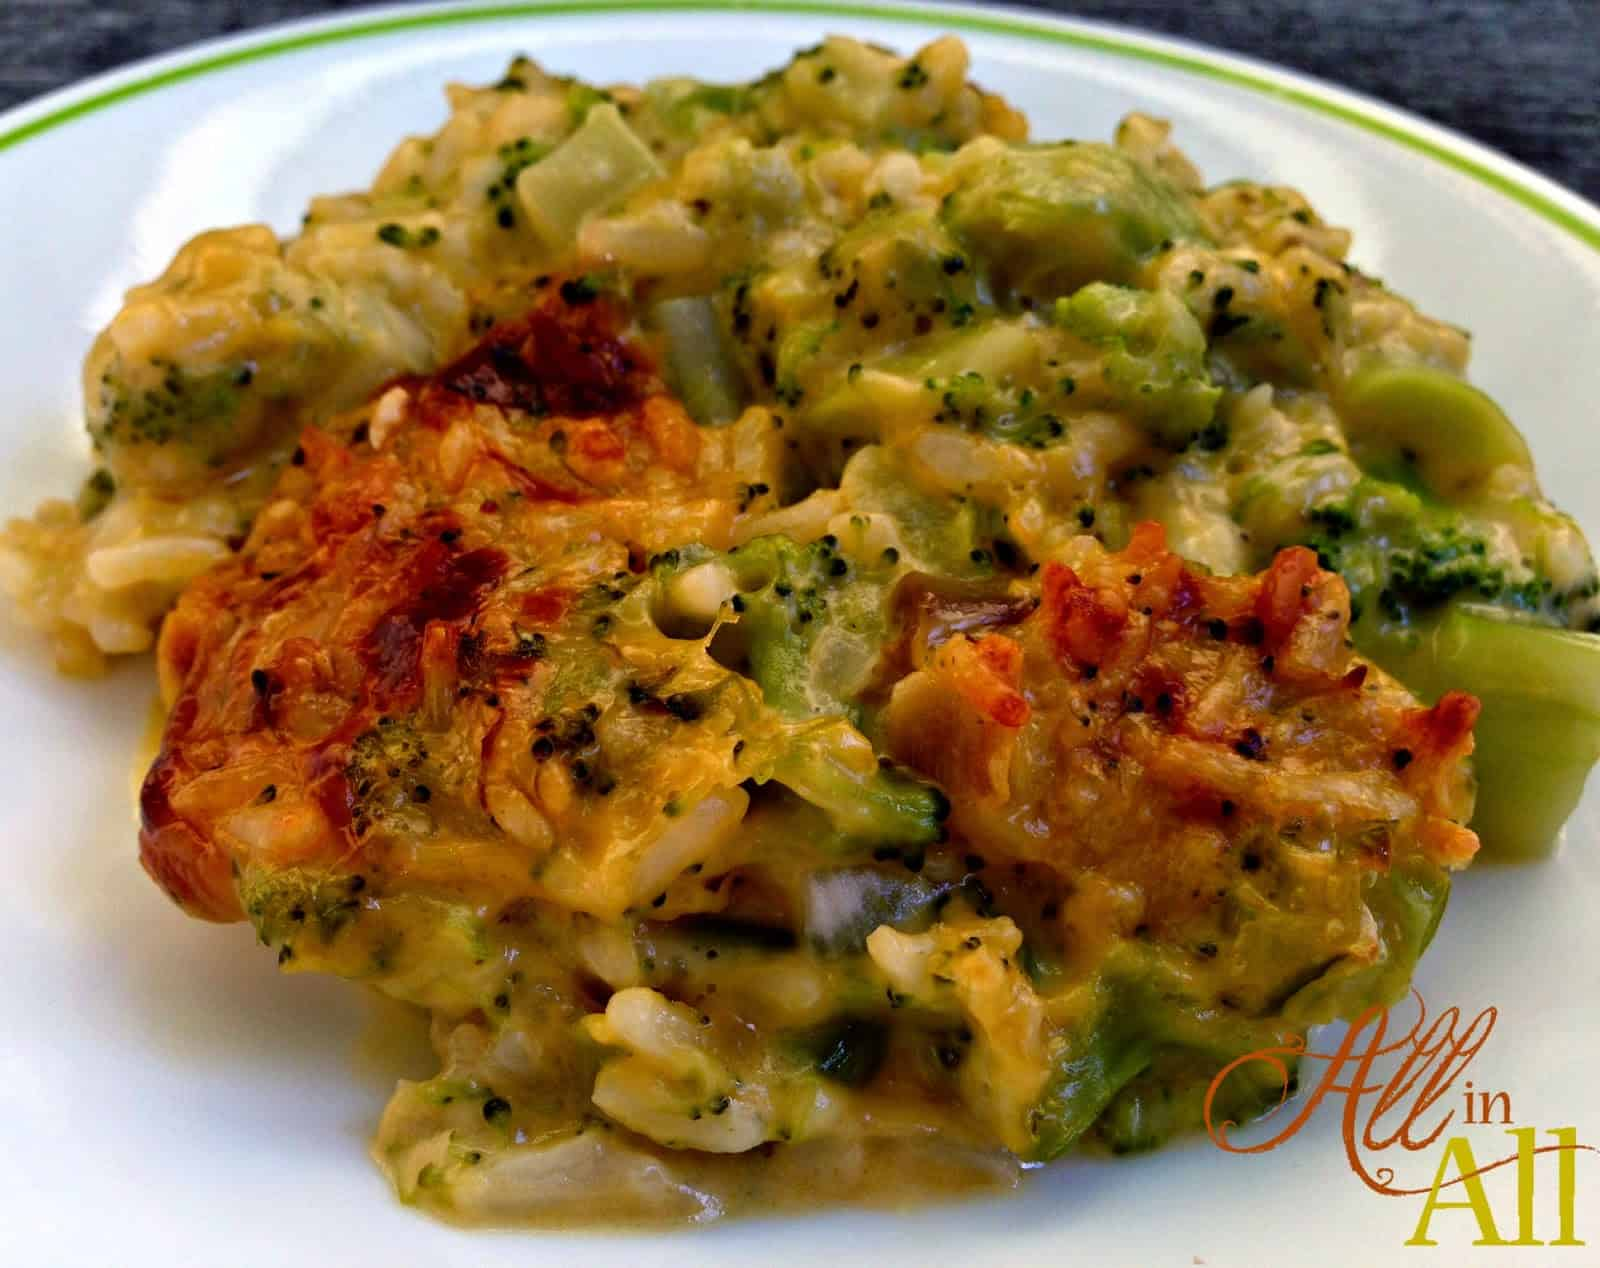 Cheesy Broccoli Rice Casserole - All in All